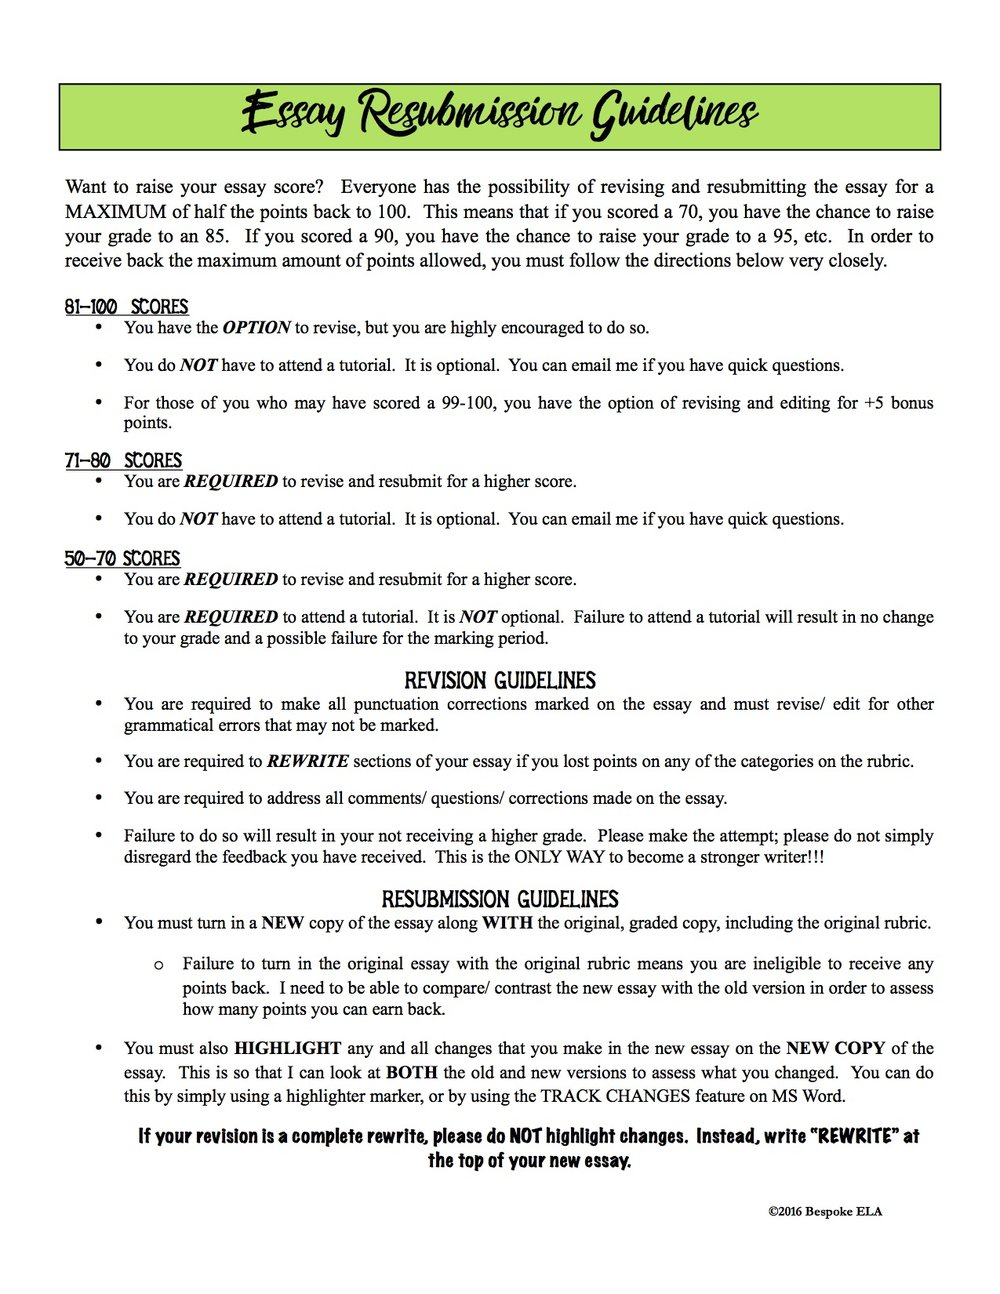 008 Research Paper 3399119928 Webiste That Will Grade Your Essay For High School Biology Outstanding Guidelines Full